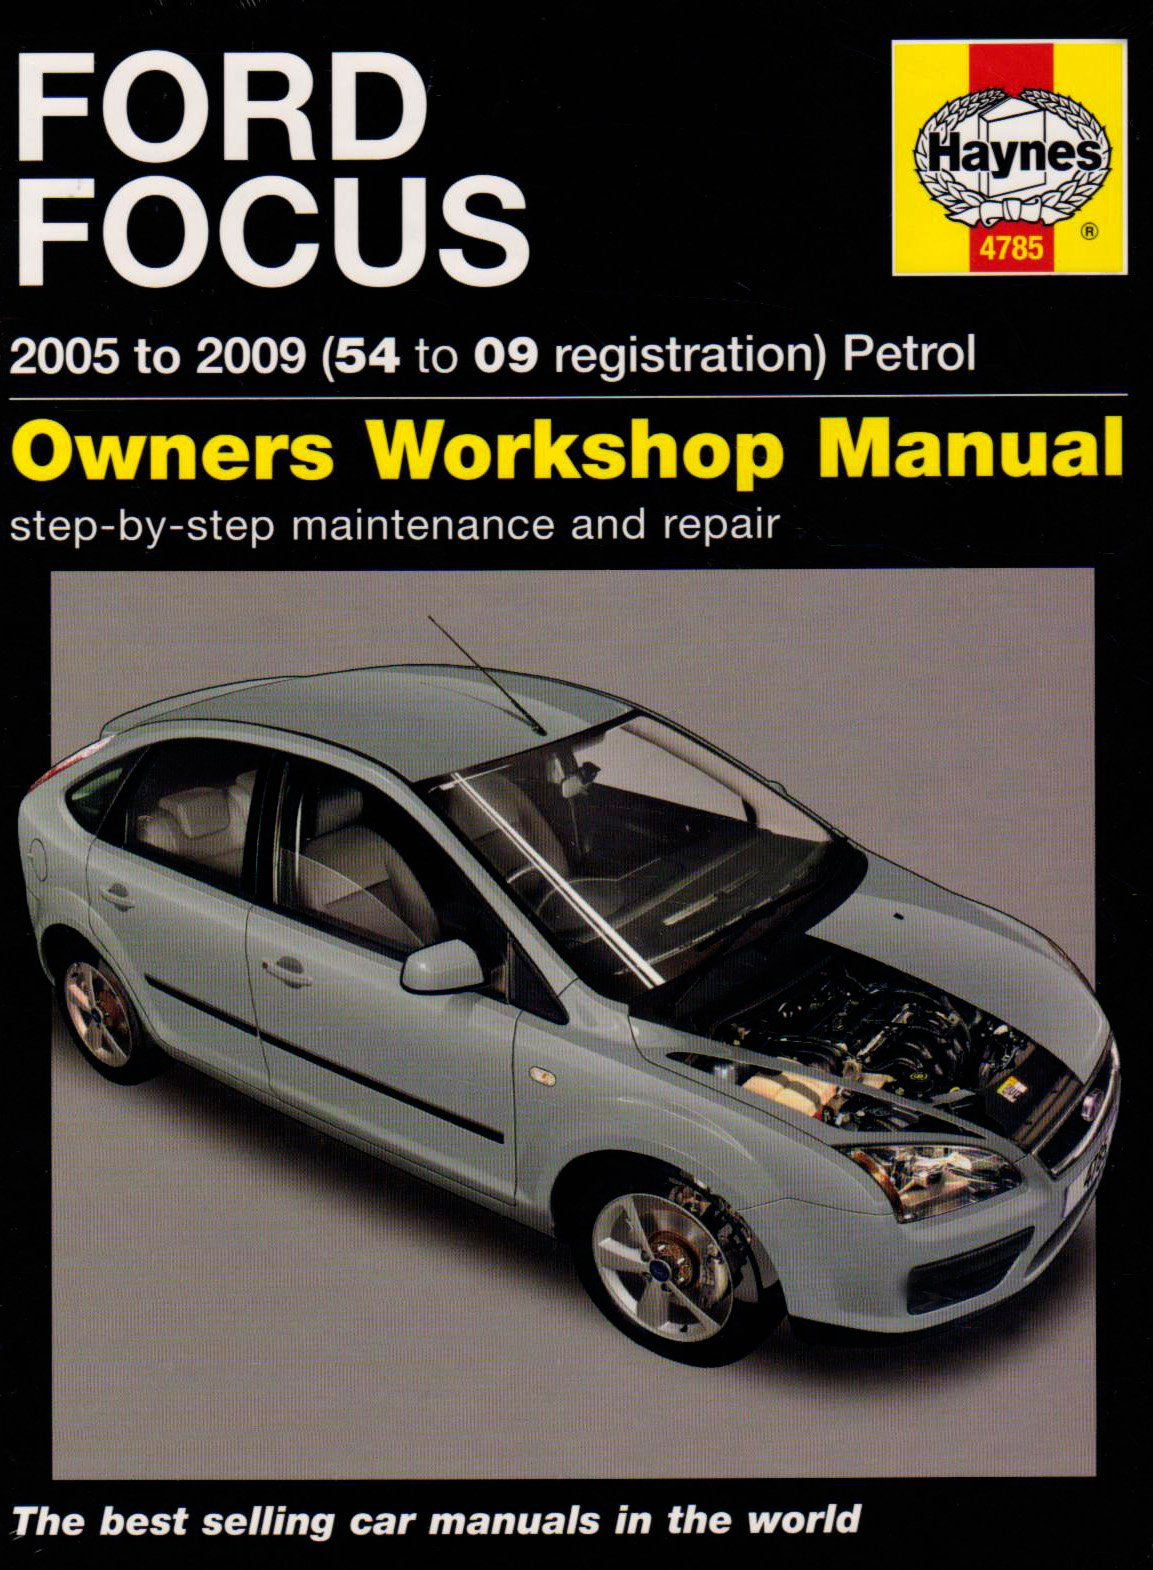 ford focus zetec 2007 owners manual how to and user guide rh taxibermuda co ford focus 1.6 zetec service manual filetype pdf 2007 ford focus zetec owners manual